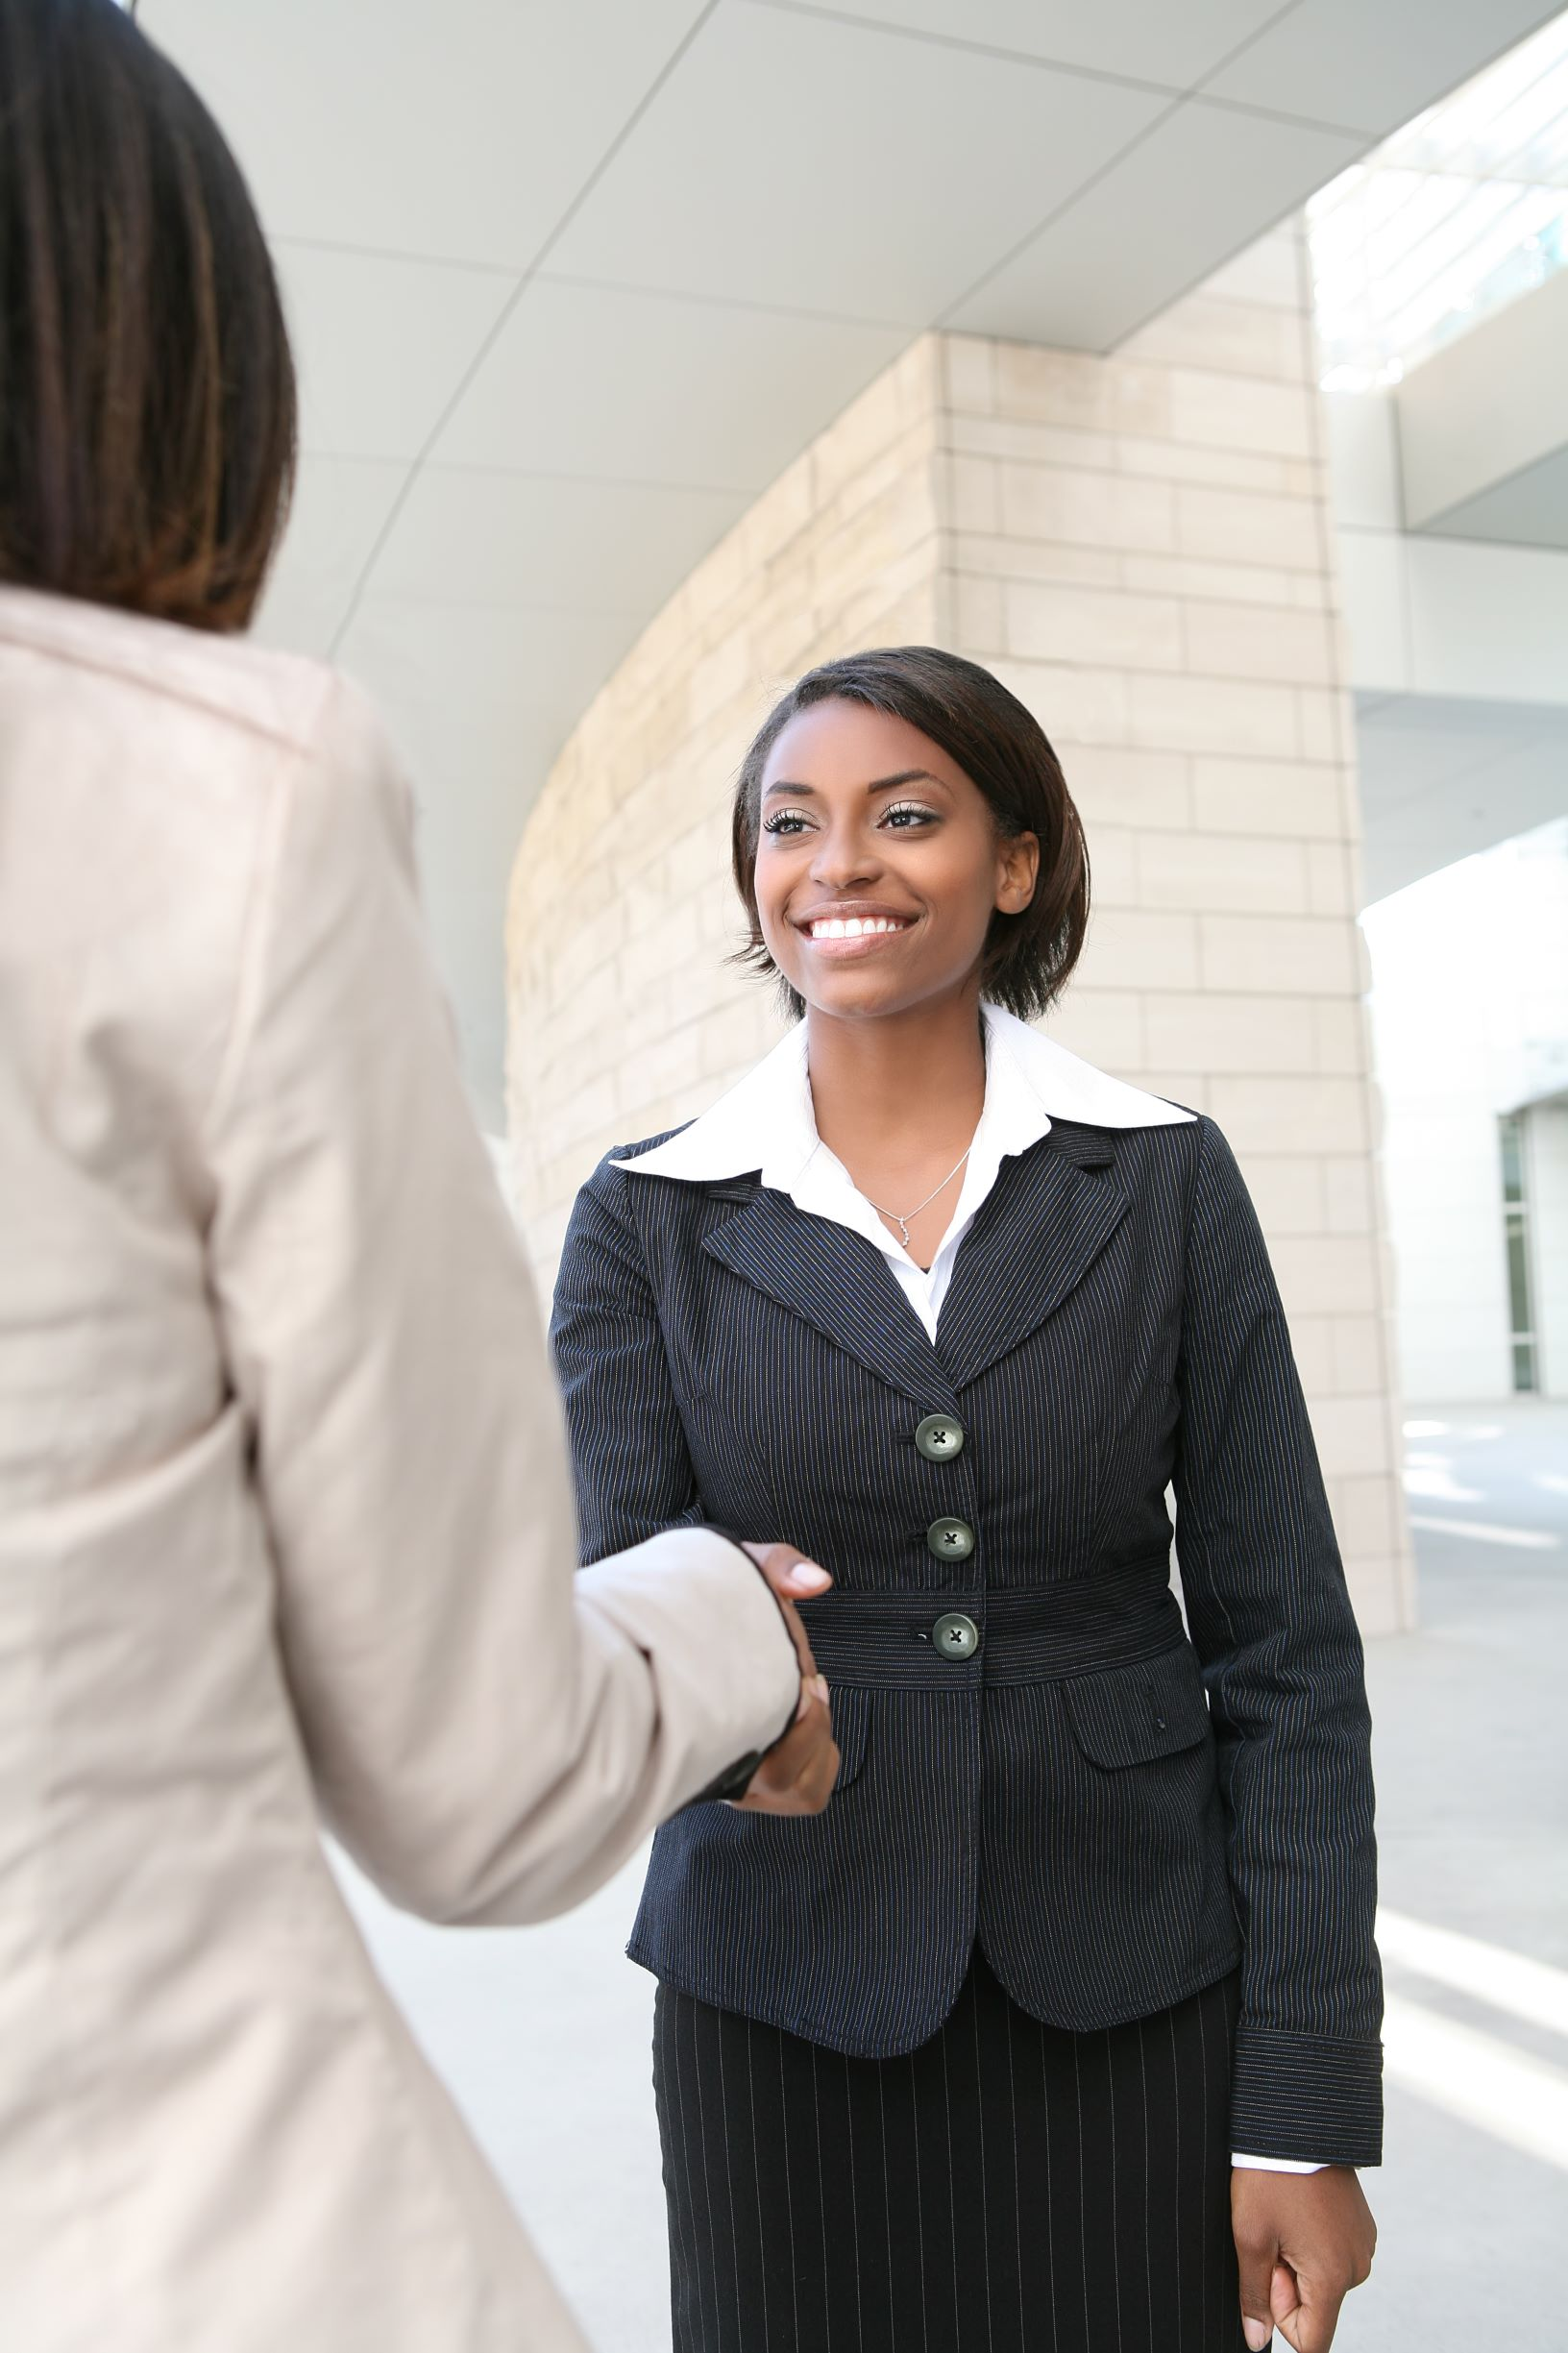 student seeking job shaking hands with recruiter